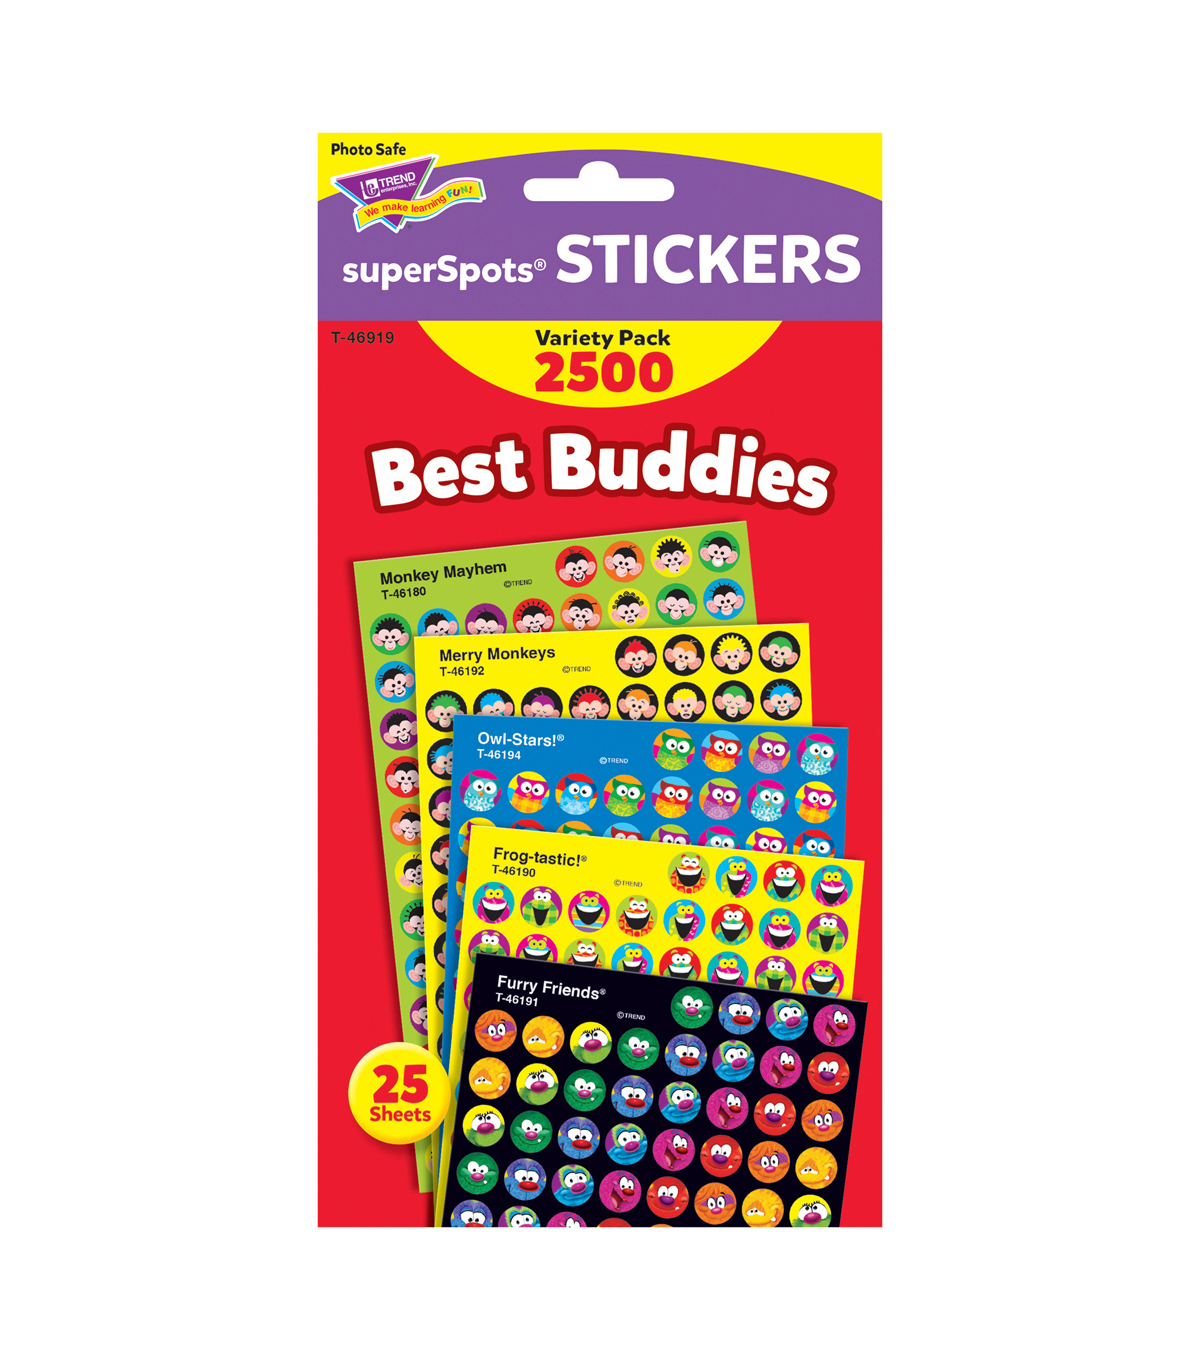 Best Buddies Collection superSpots Stickers Variety Pack 3pk